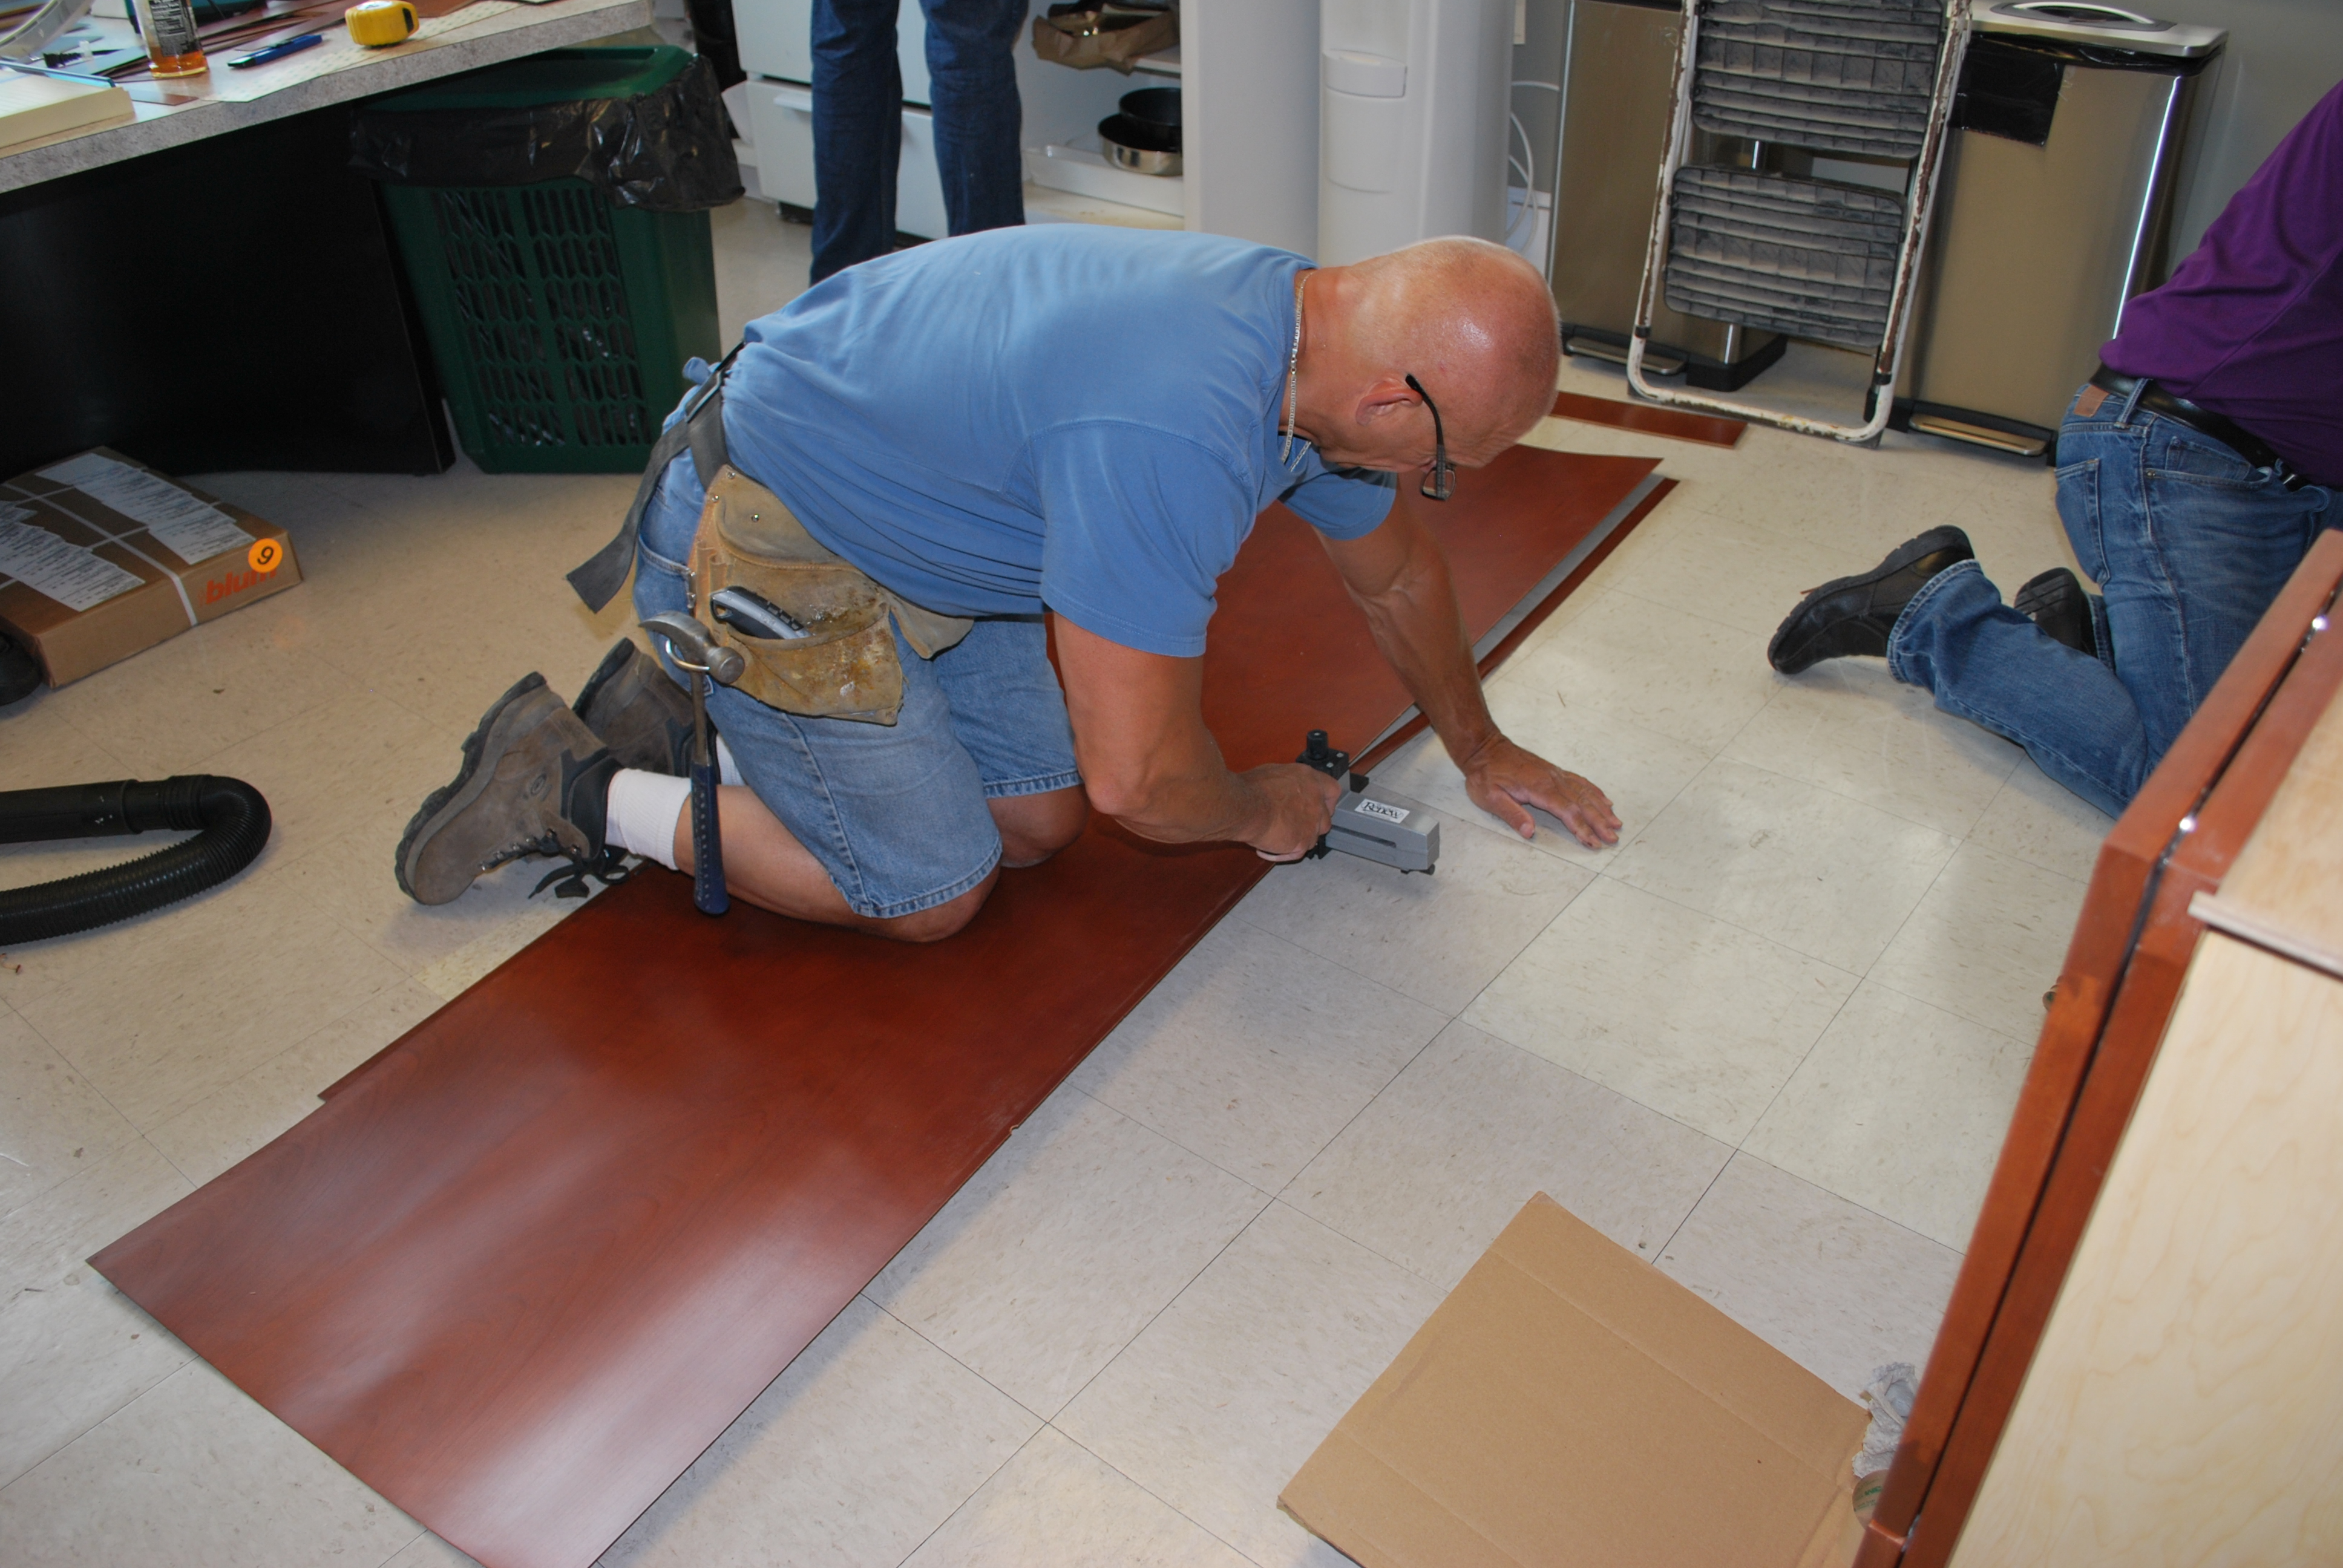 DURING REFACING - workman prepares sections of cherry laminate.